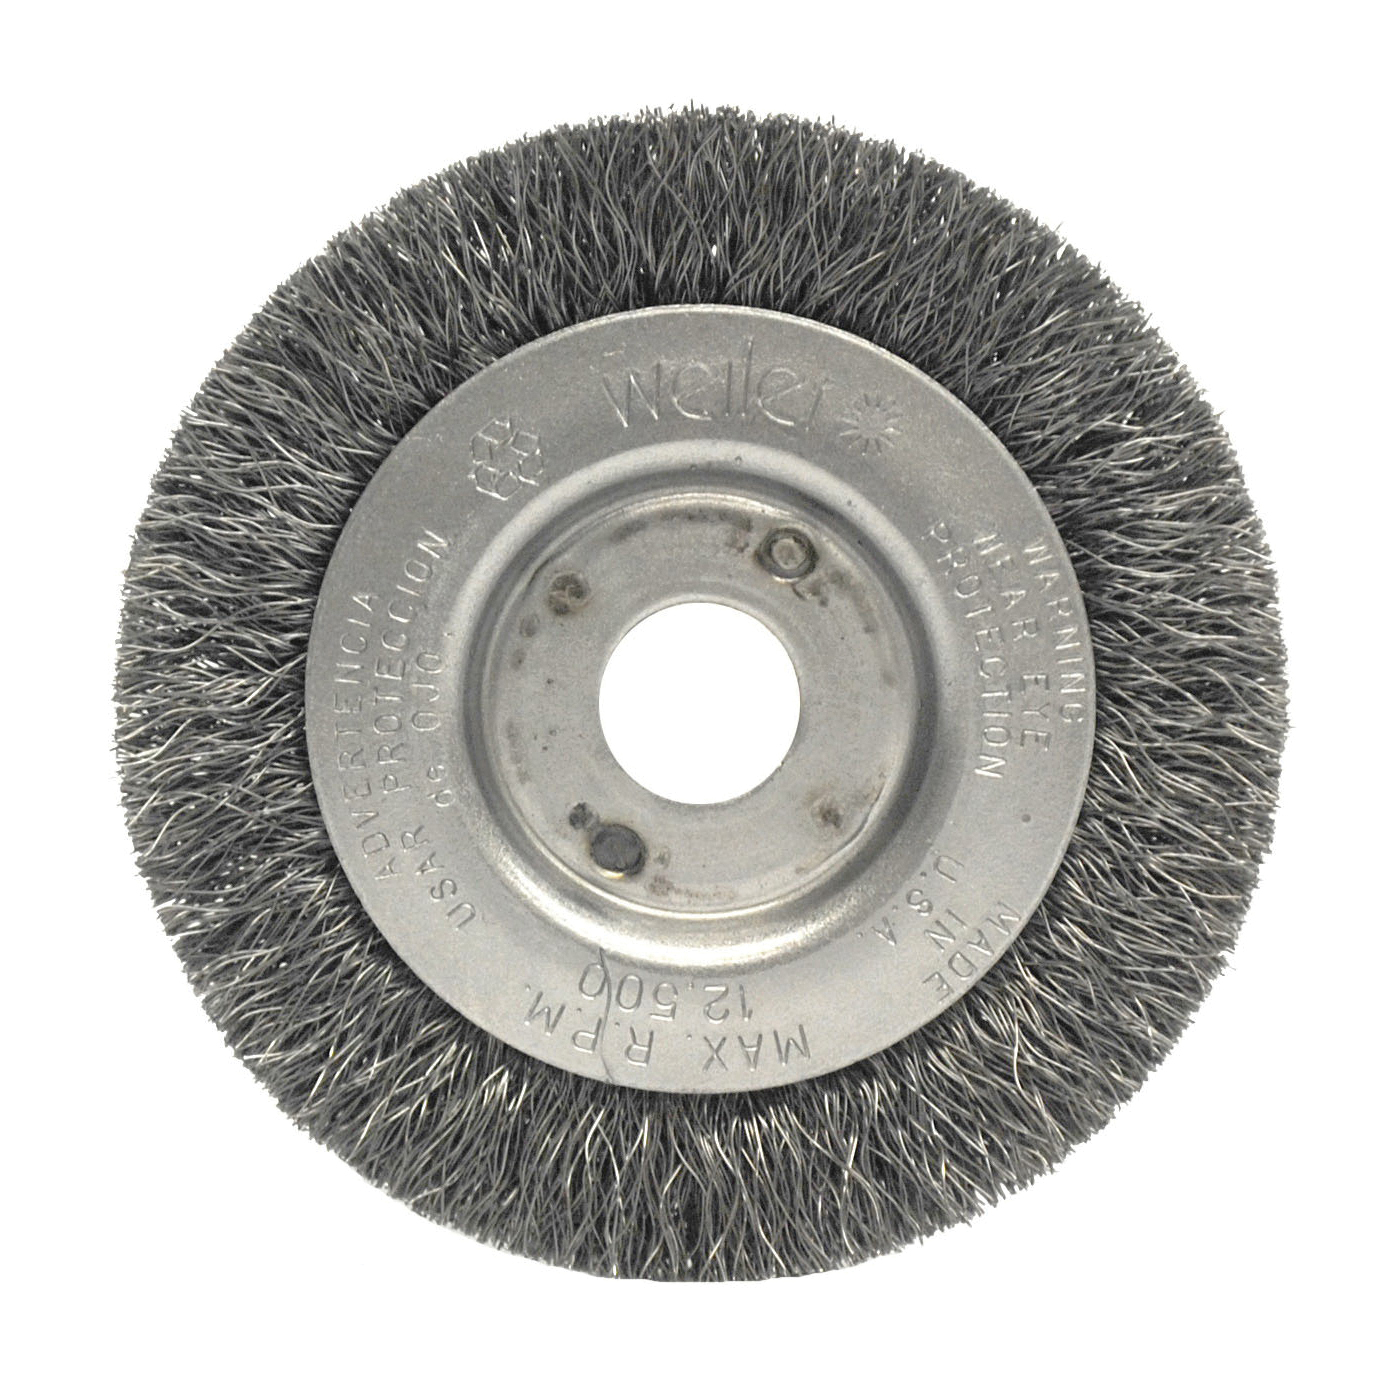 Weiler® 00204 Narrow Face Wheel Brush, 3 in Dia Brush, 7/16 in W Face, 0.006 in Dia Crimped Filament/Wire, 1/2 to 3/8 in Arbor Hole